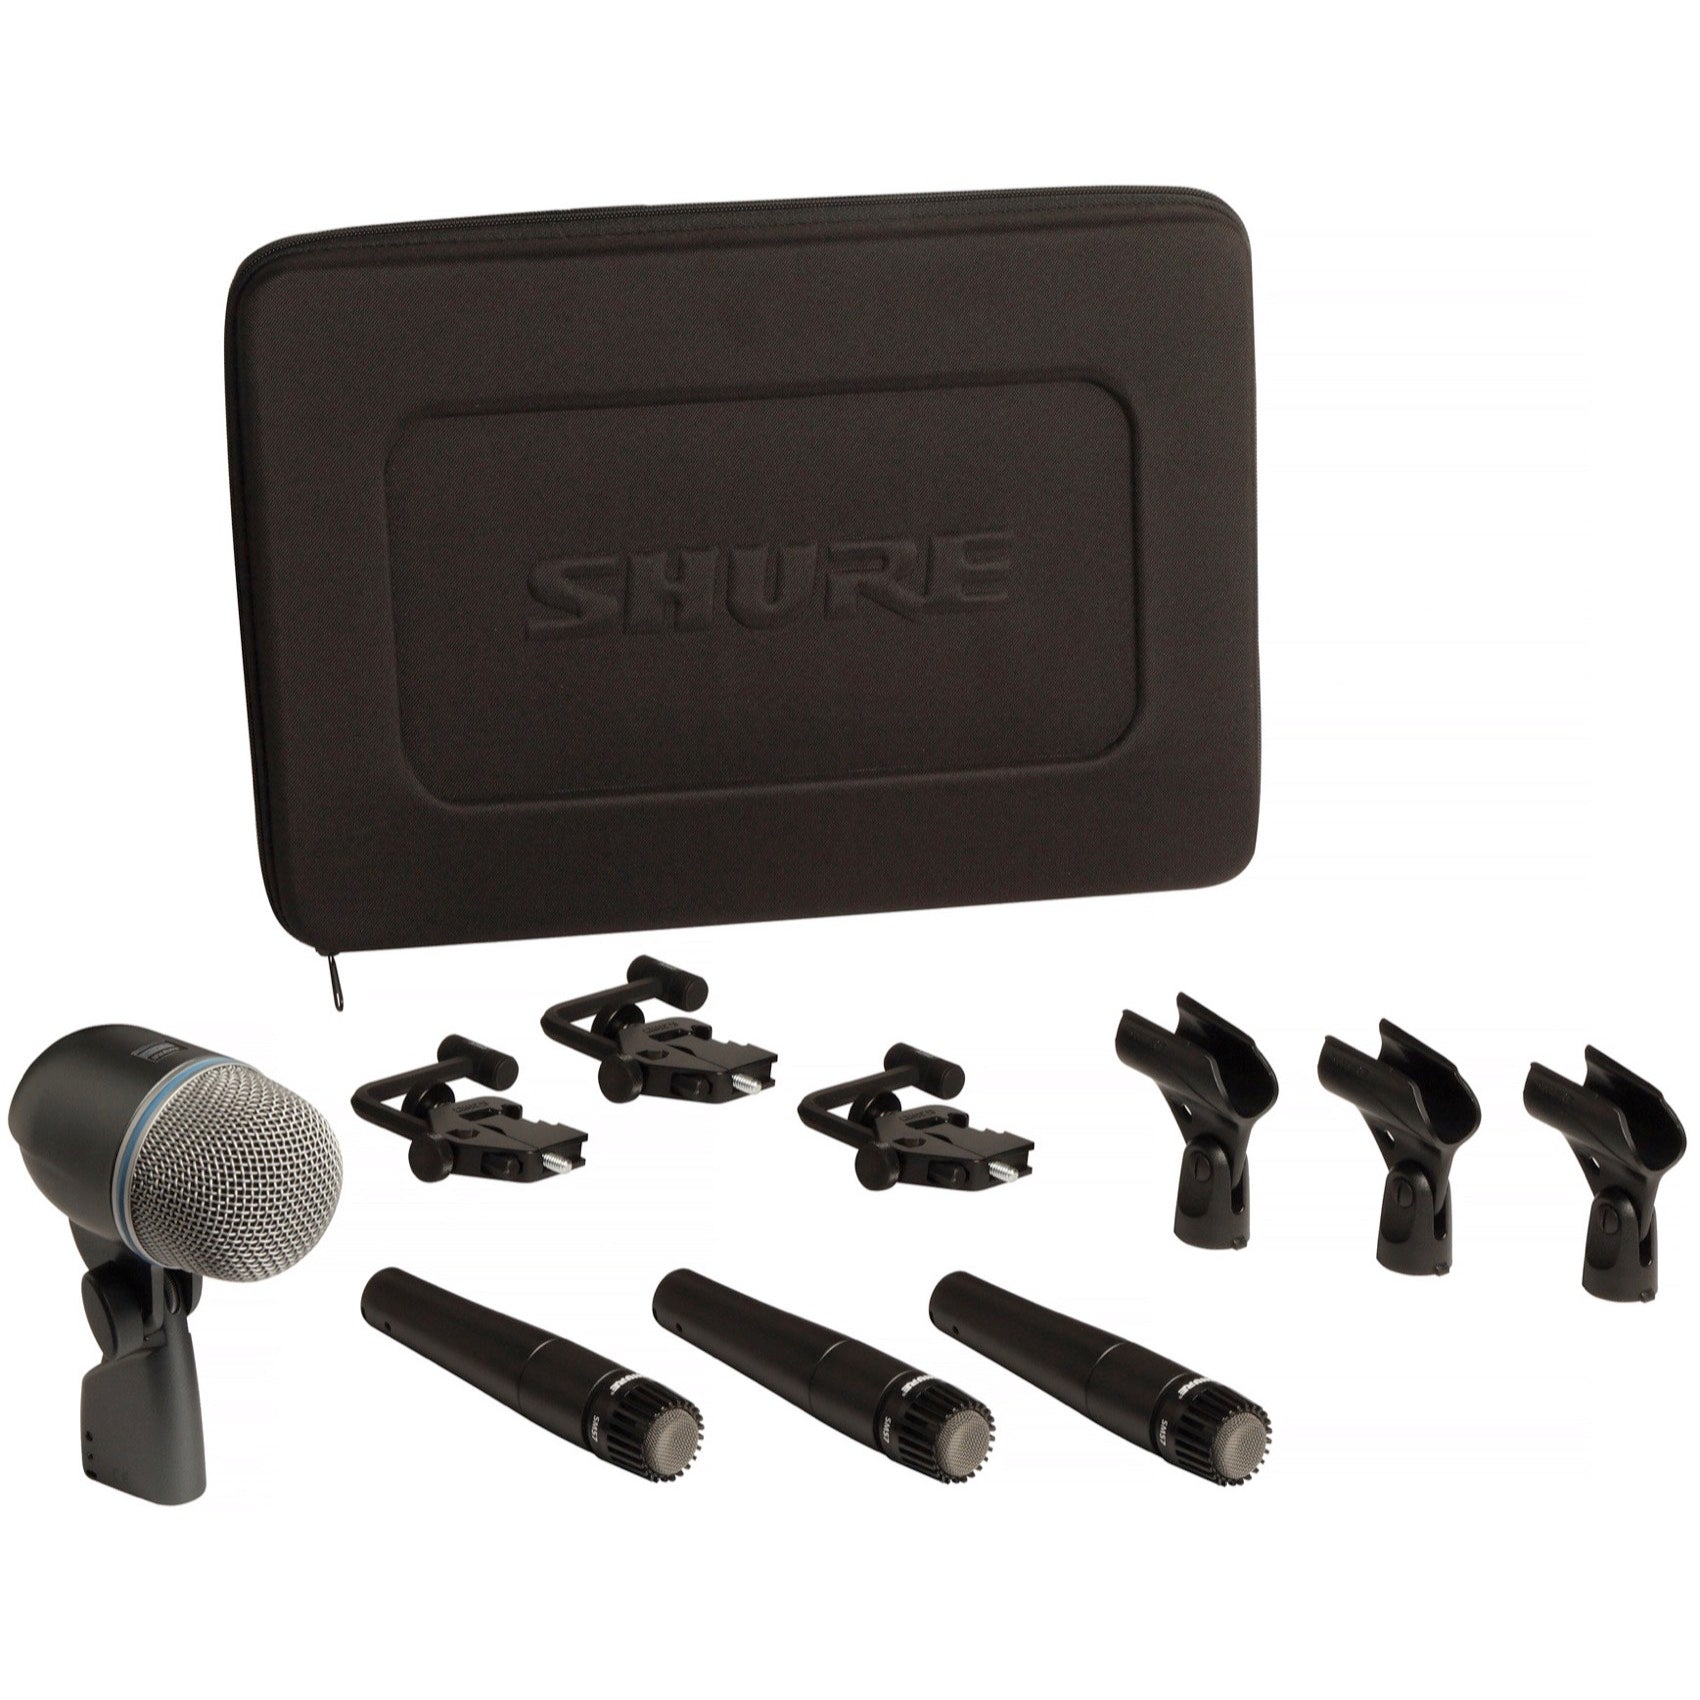 Shure DMK57-52 Drum Microphone Package (3 x SM57, 1 x Beta52, Case, Drum Mounts)